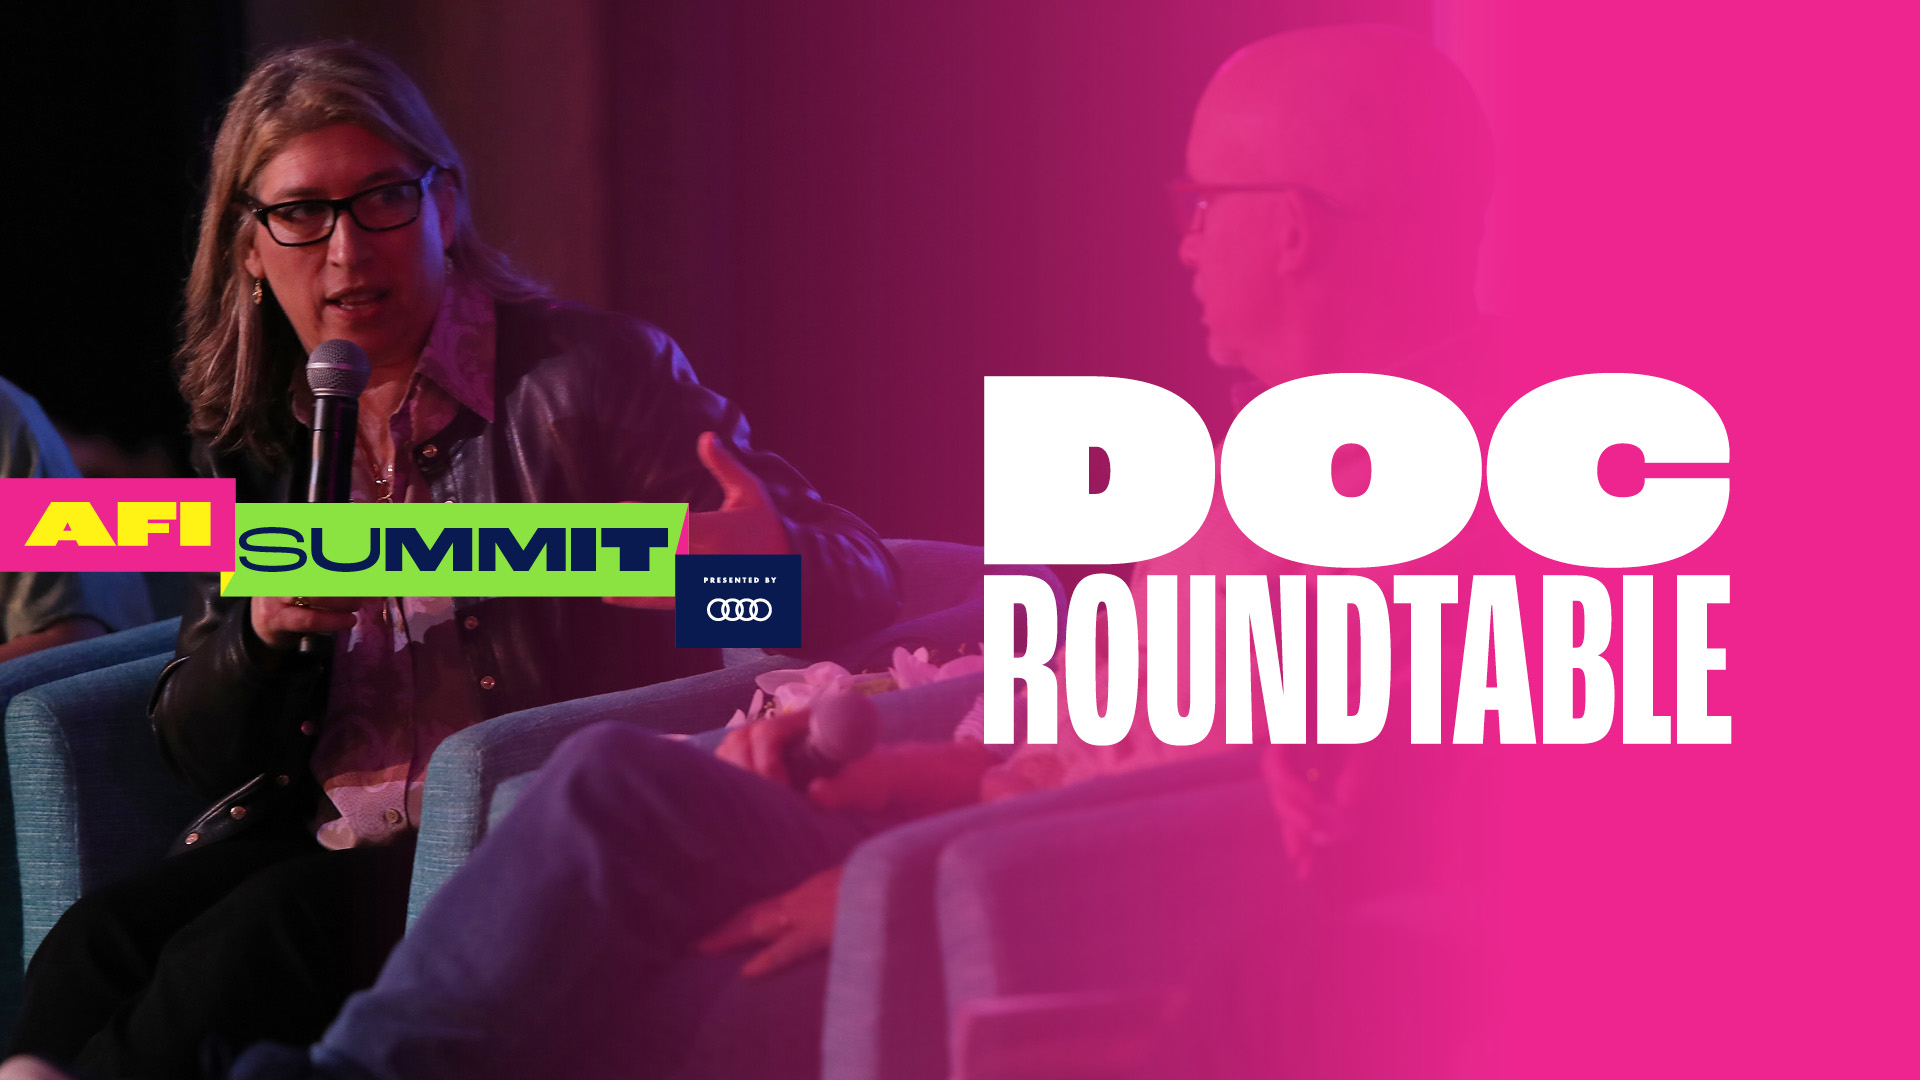 DOC ROUNDTABLE